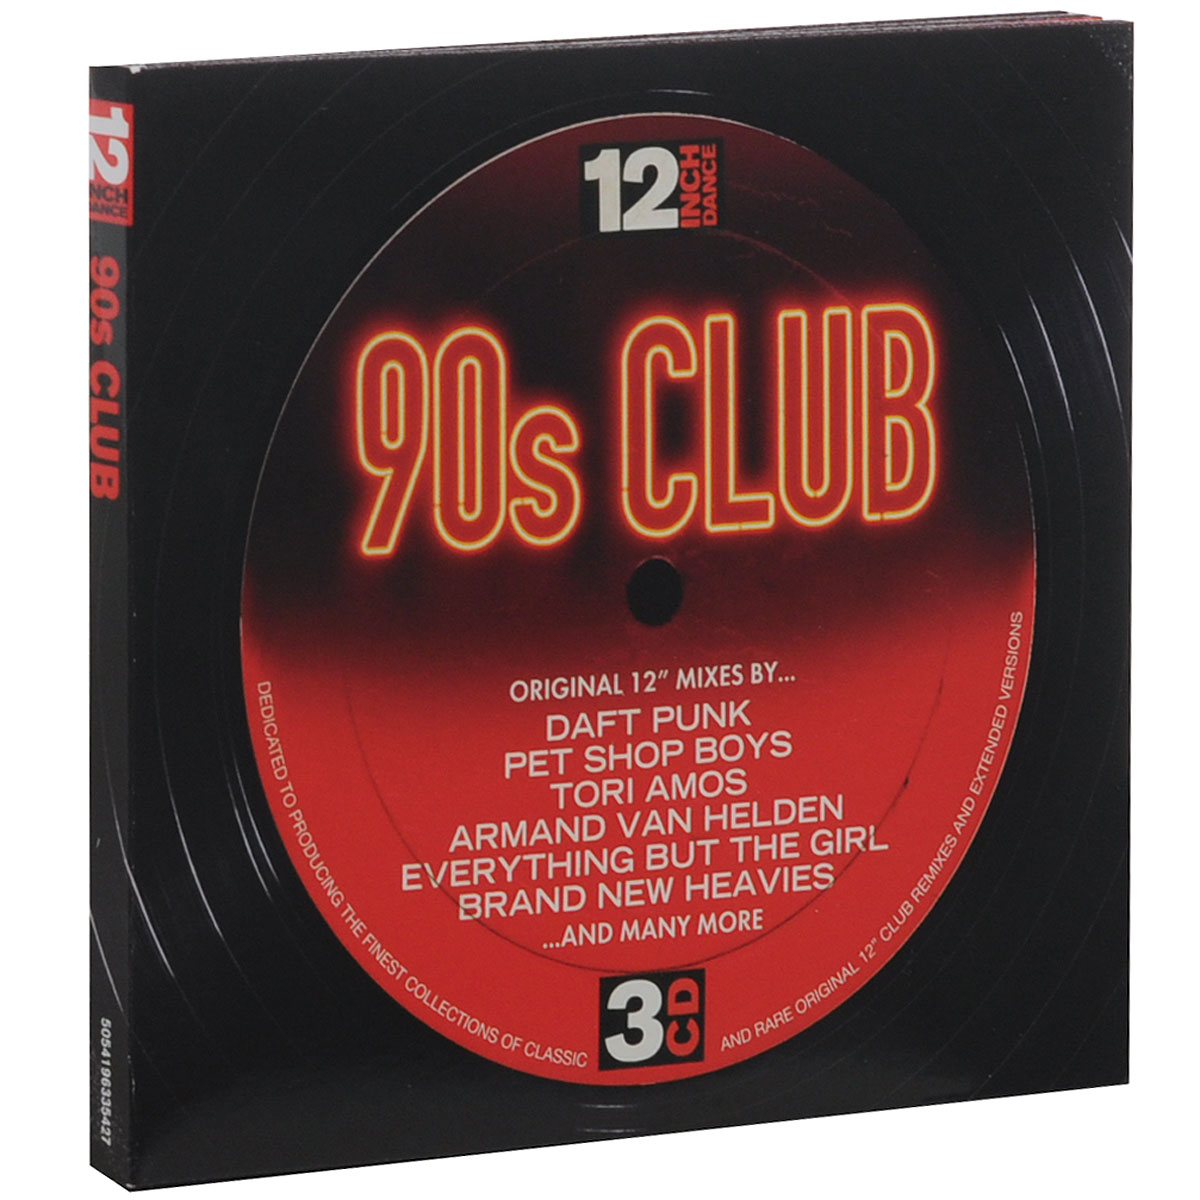 12 Inch Dance. 90s Club (3 CD)